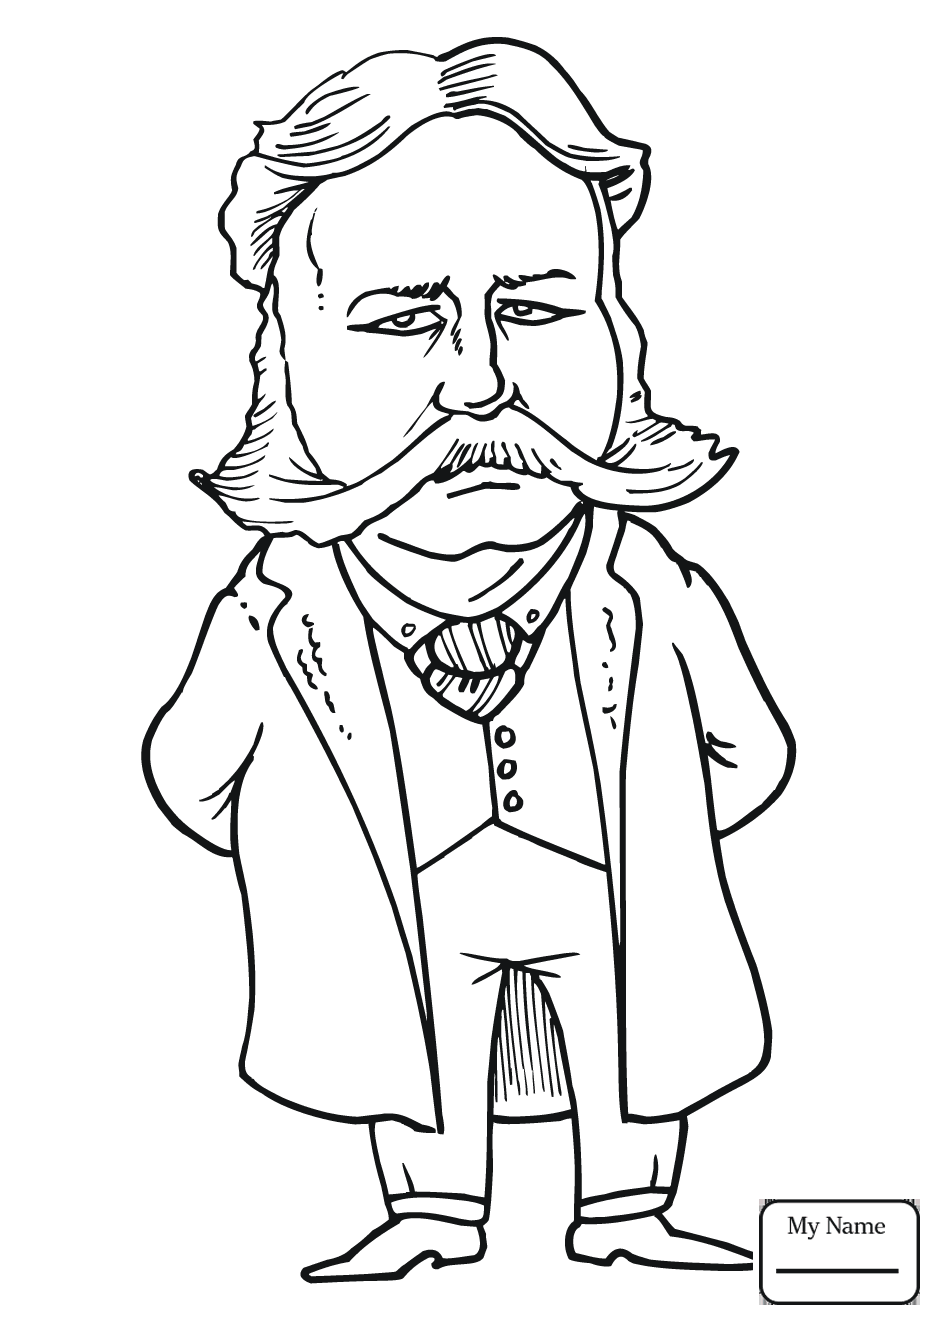 Andrew Carnegie Coloring Pages - Worksheet & Coloring Pages